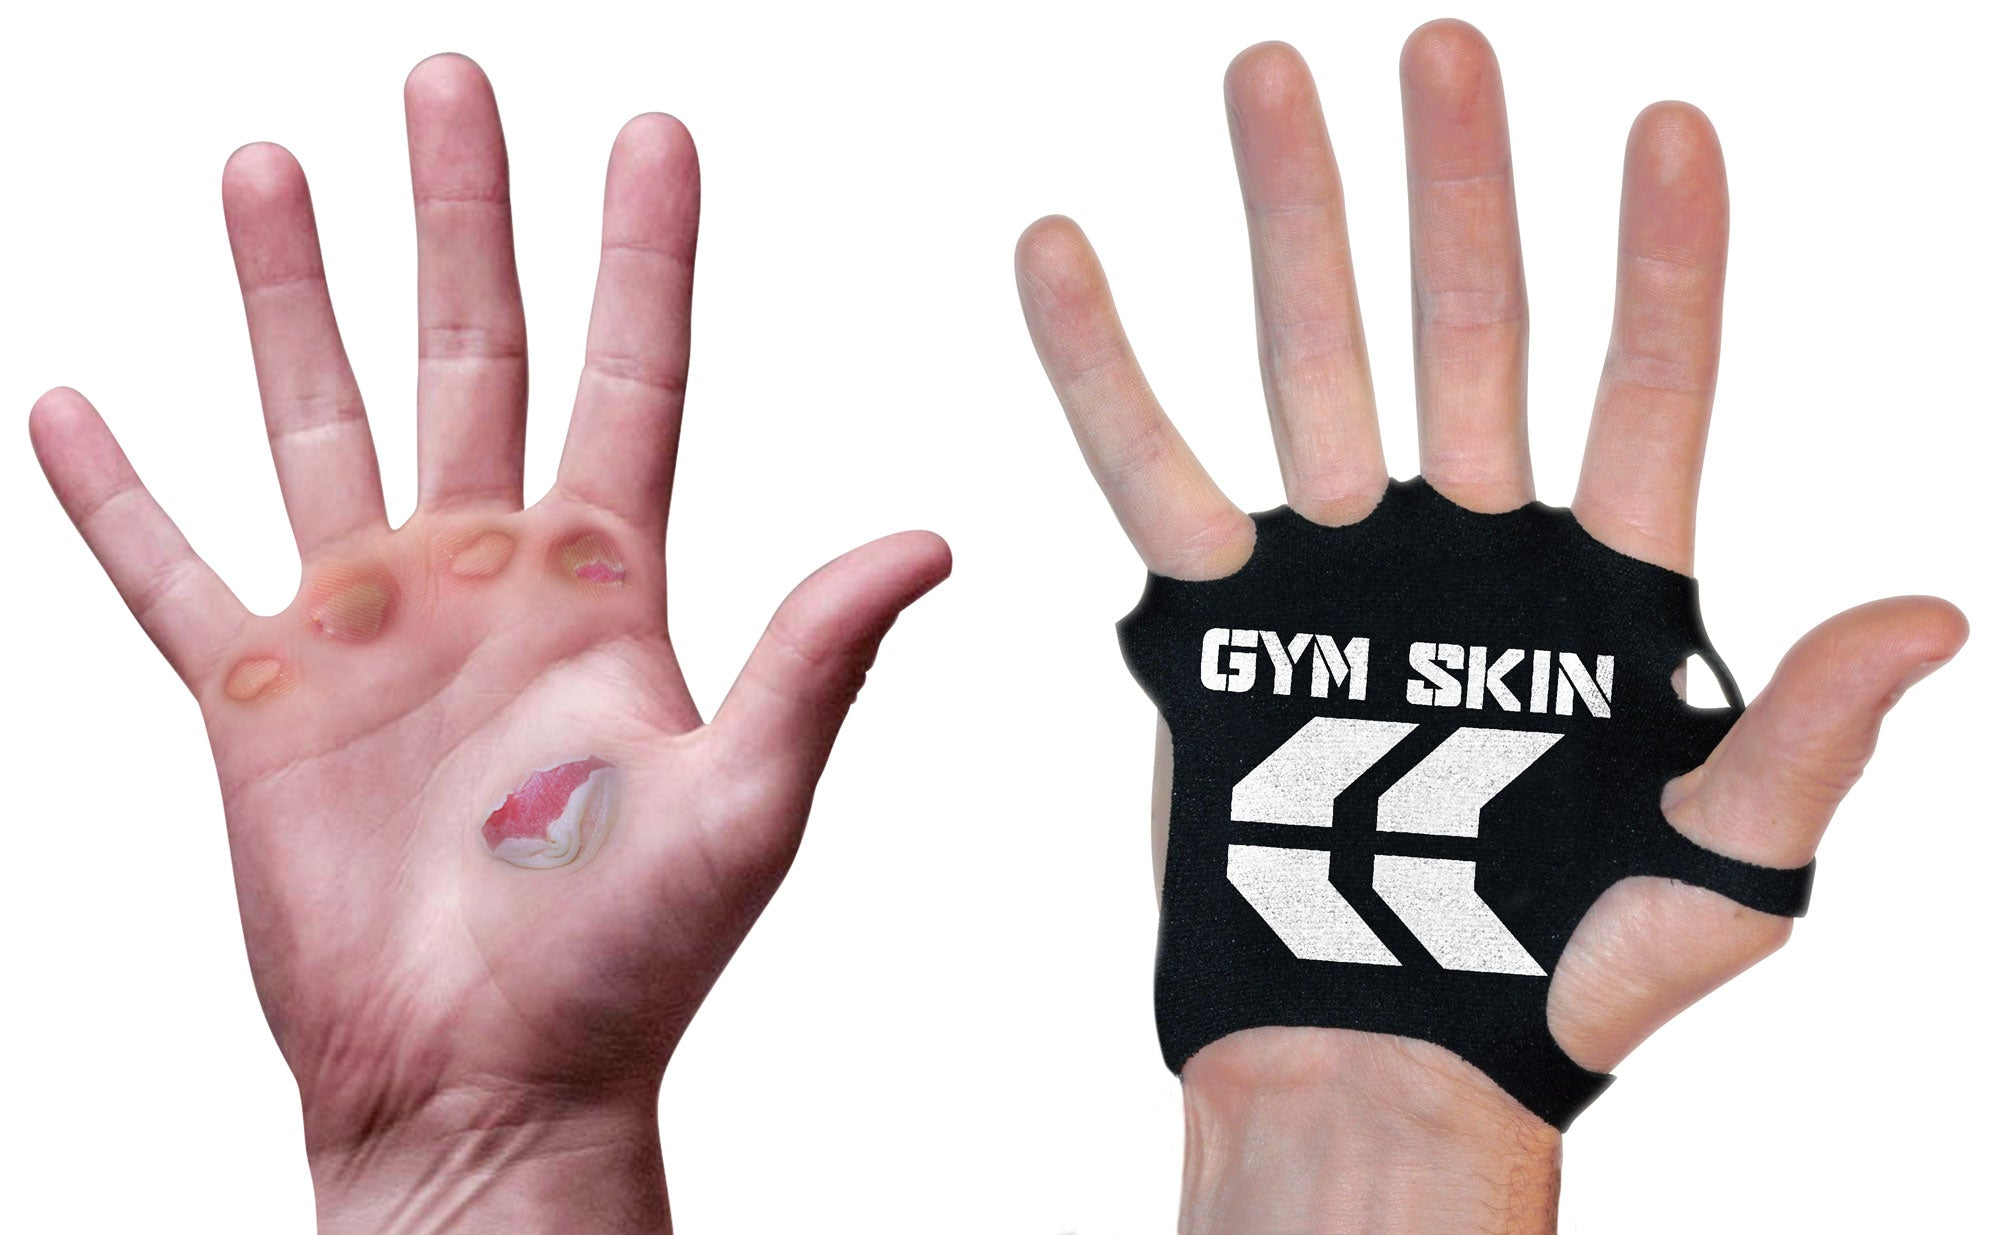 Gym Skin Fitness gloves, work out gloves, cross fit / crossfit gloves, gym gloves